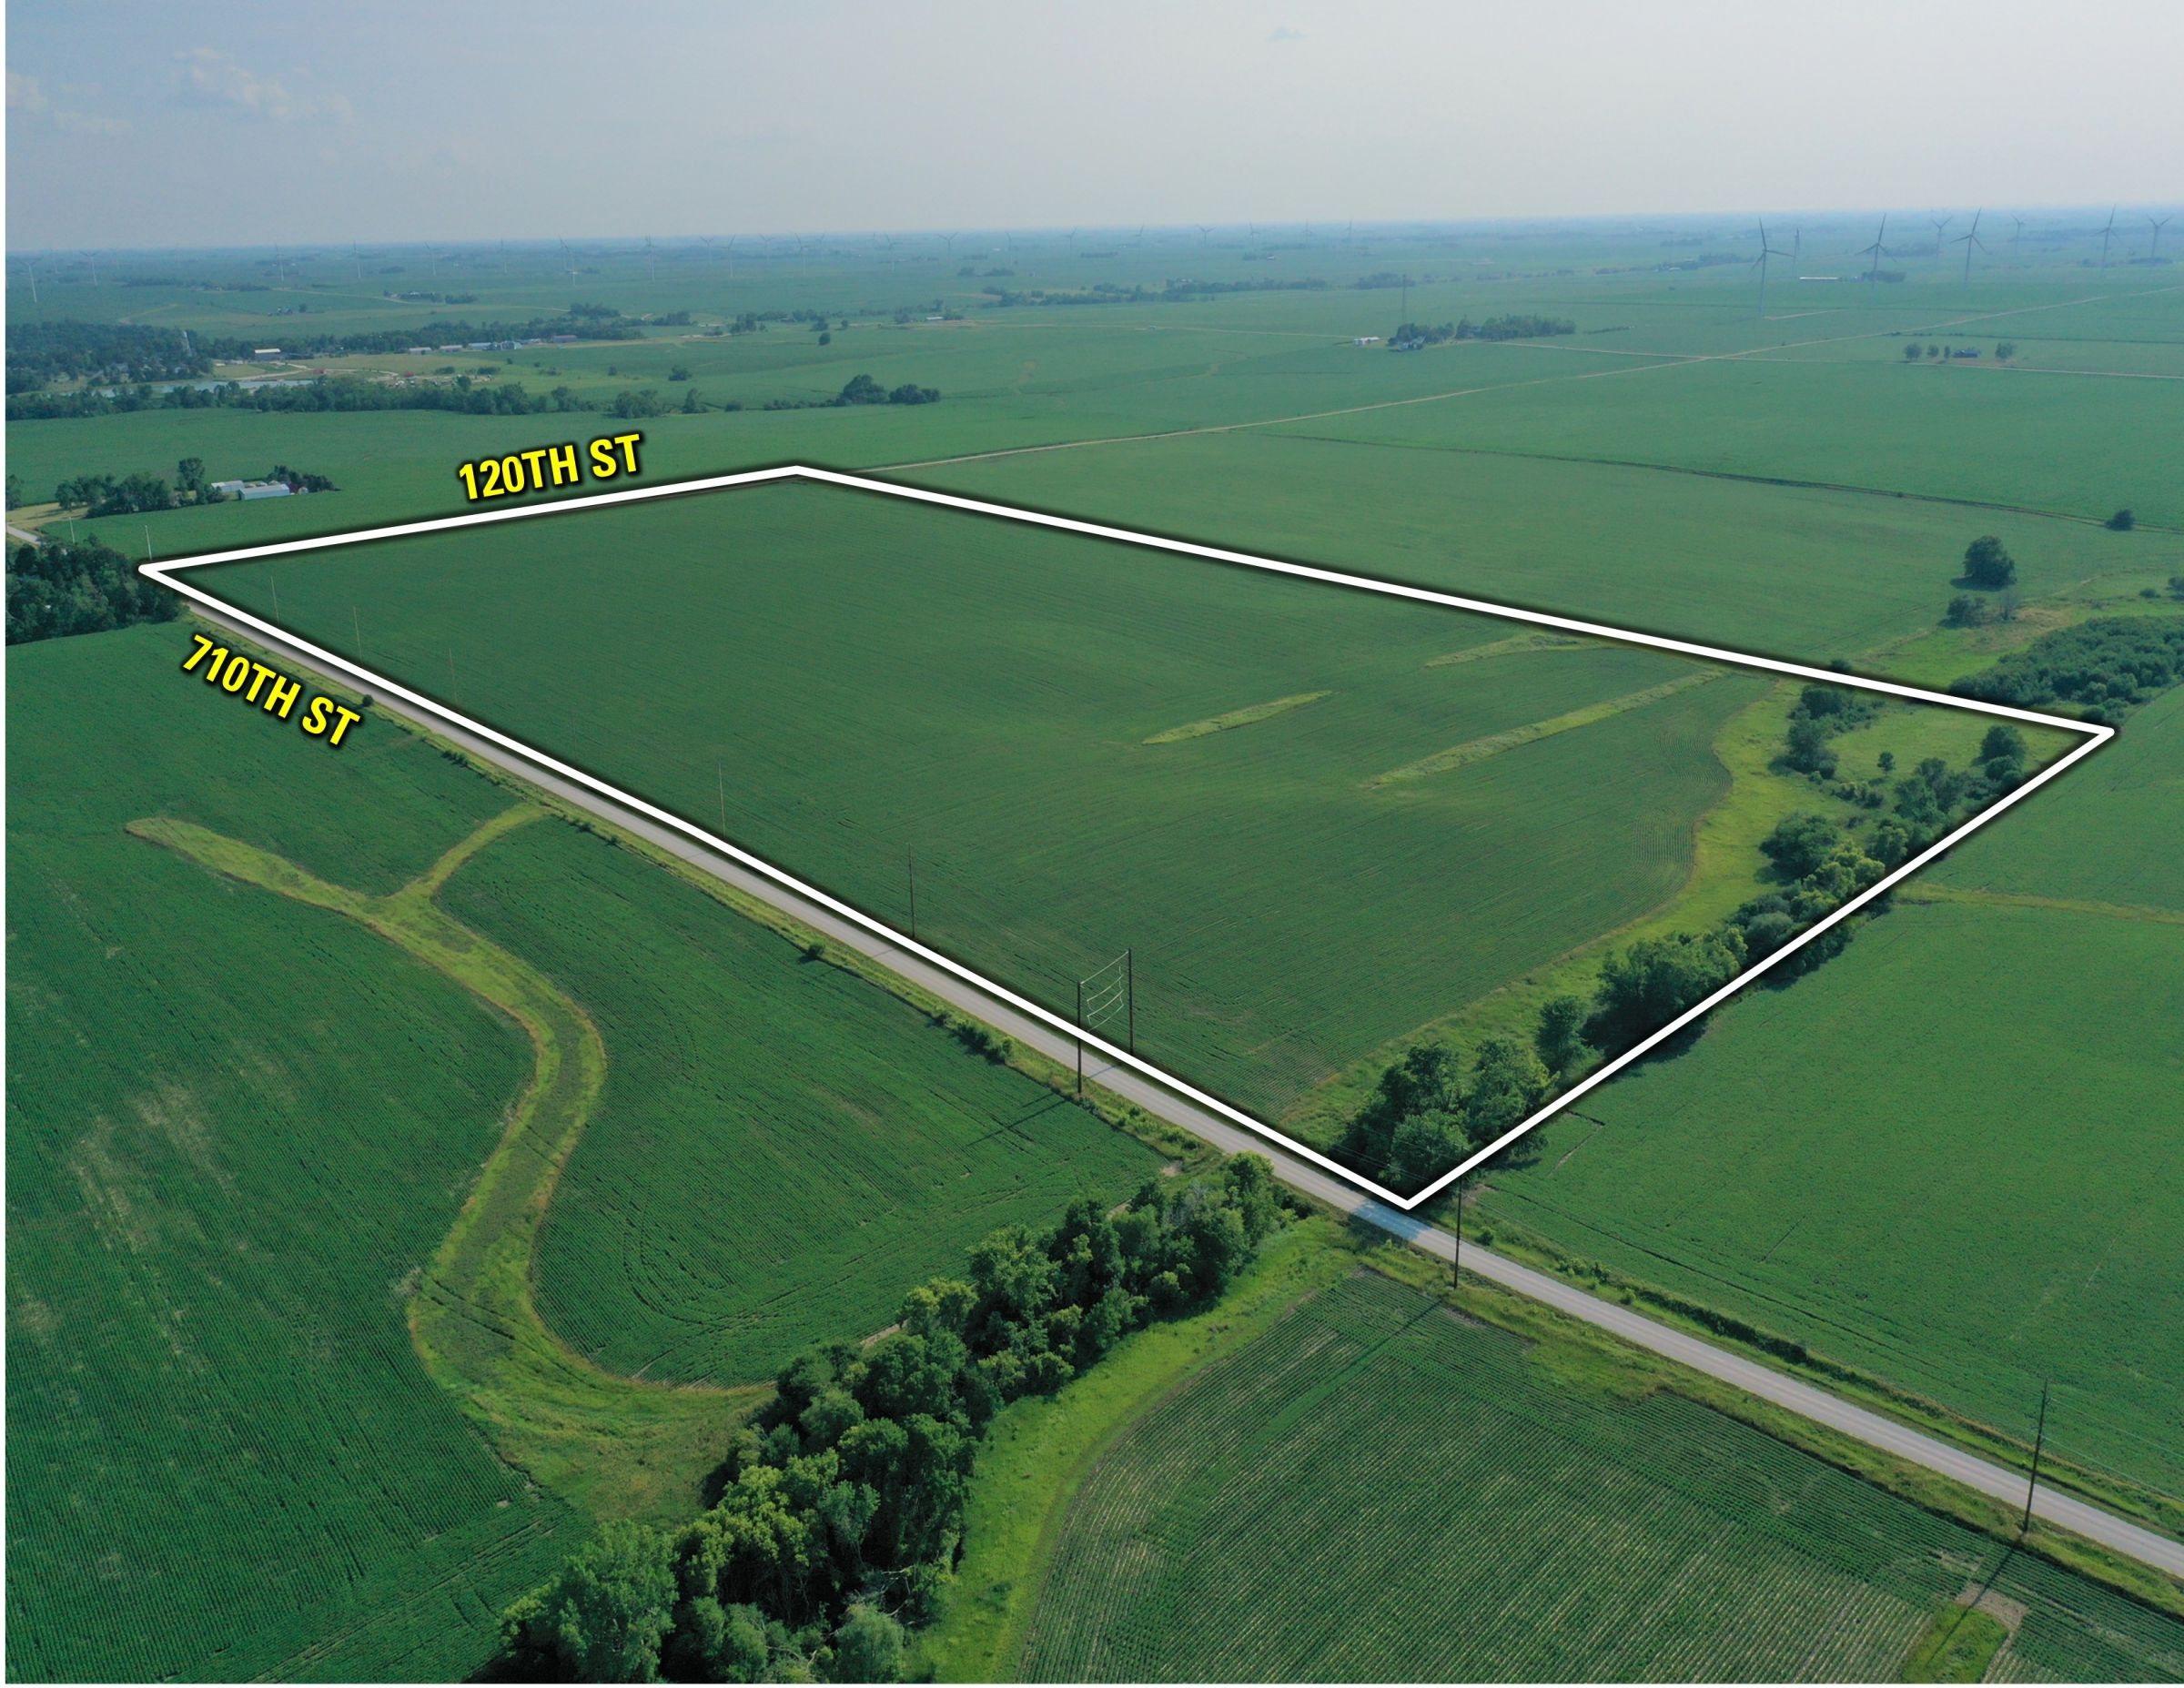 land-syndications-story-county-iowa-80-acres-listing-number-15620-2-2021-07-08-174003.jpg